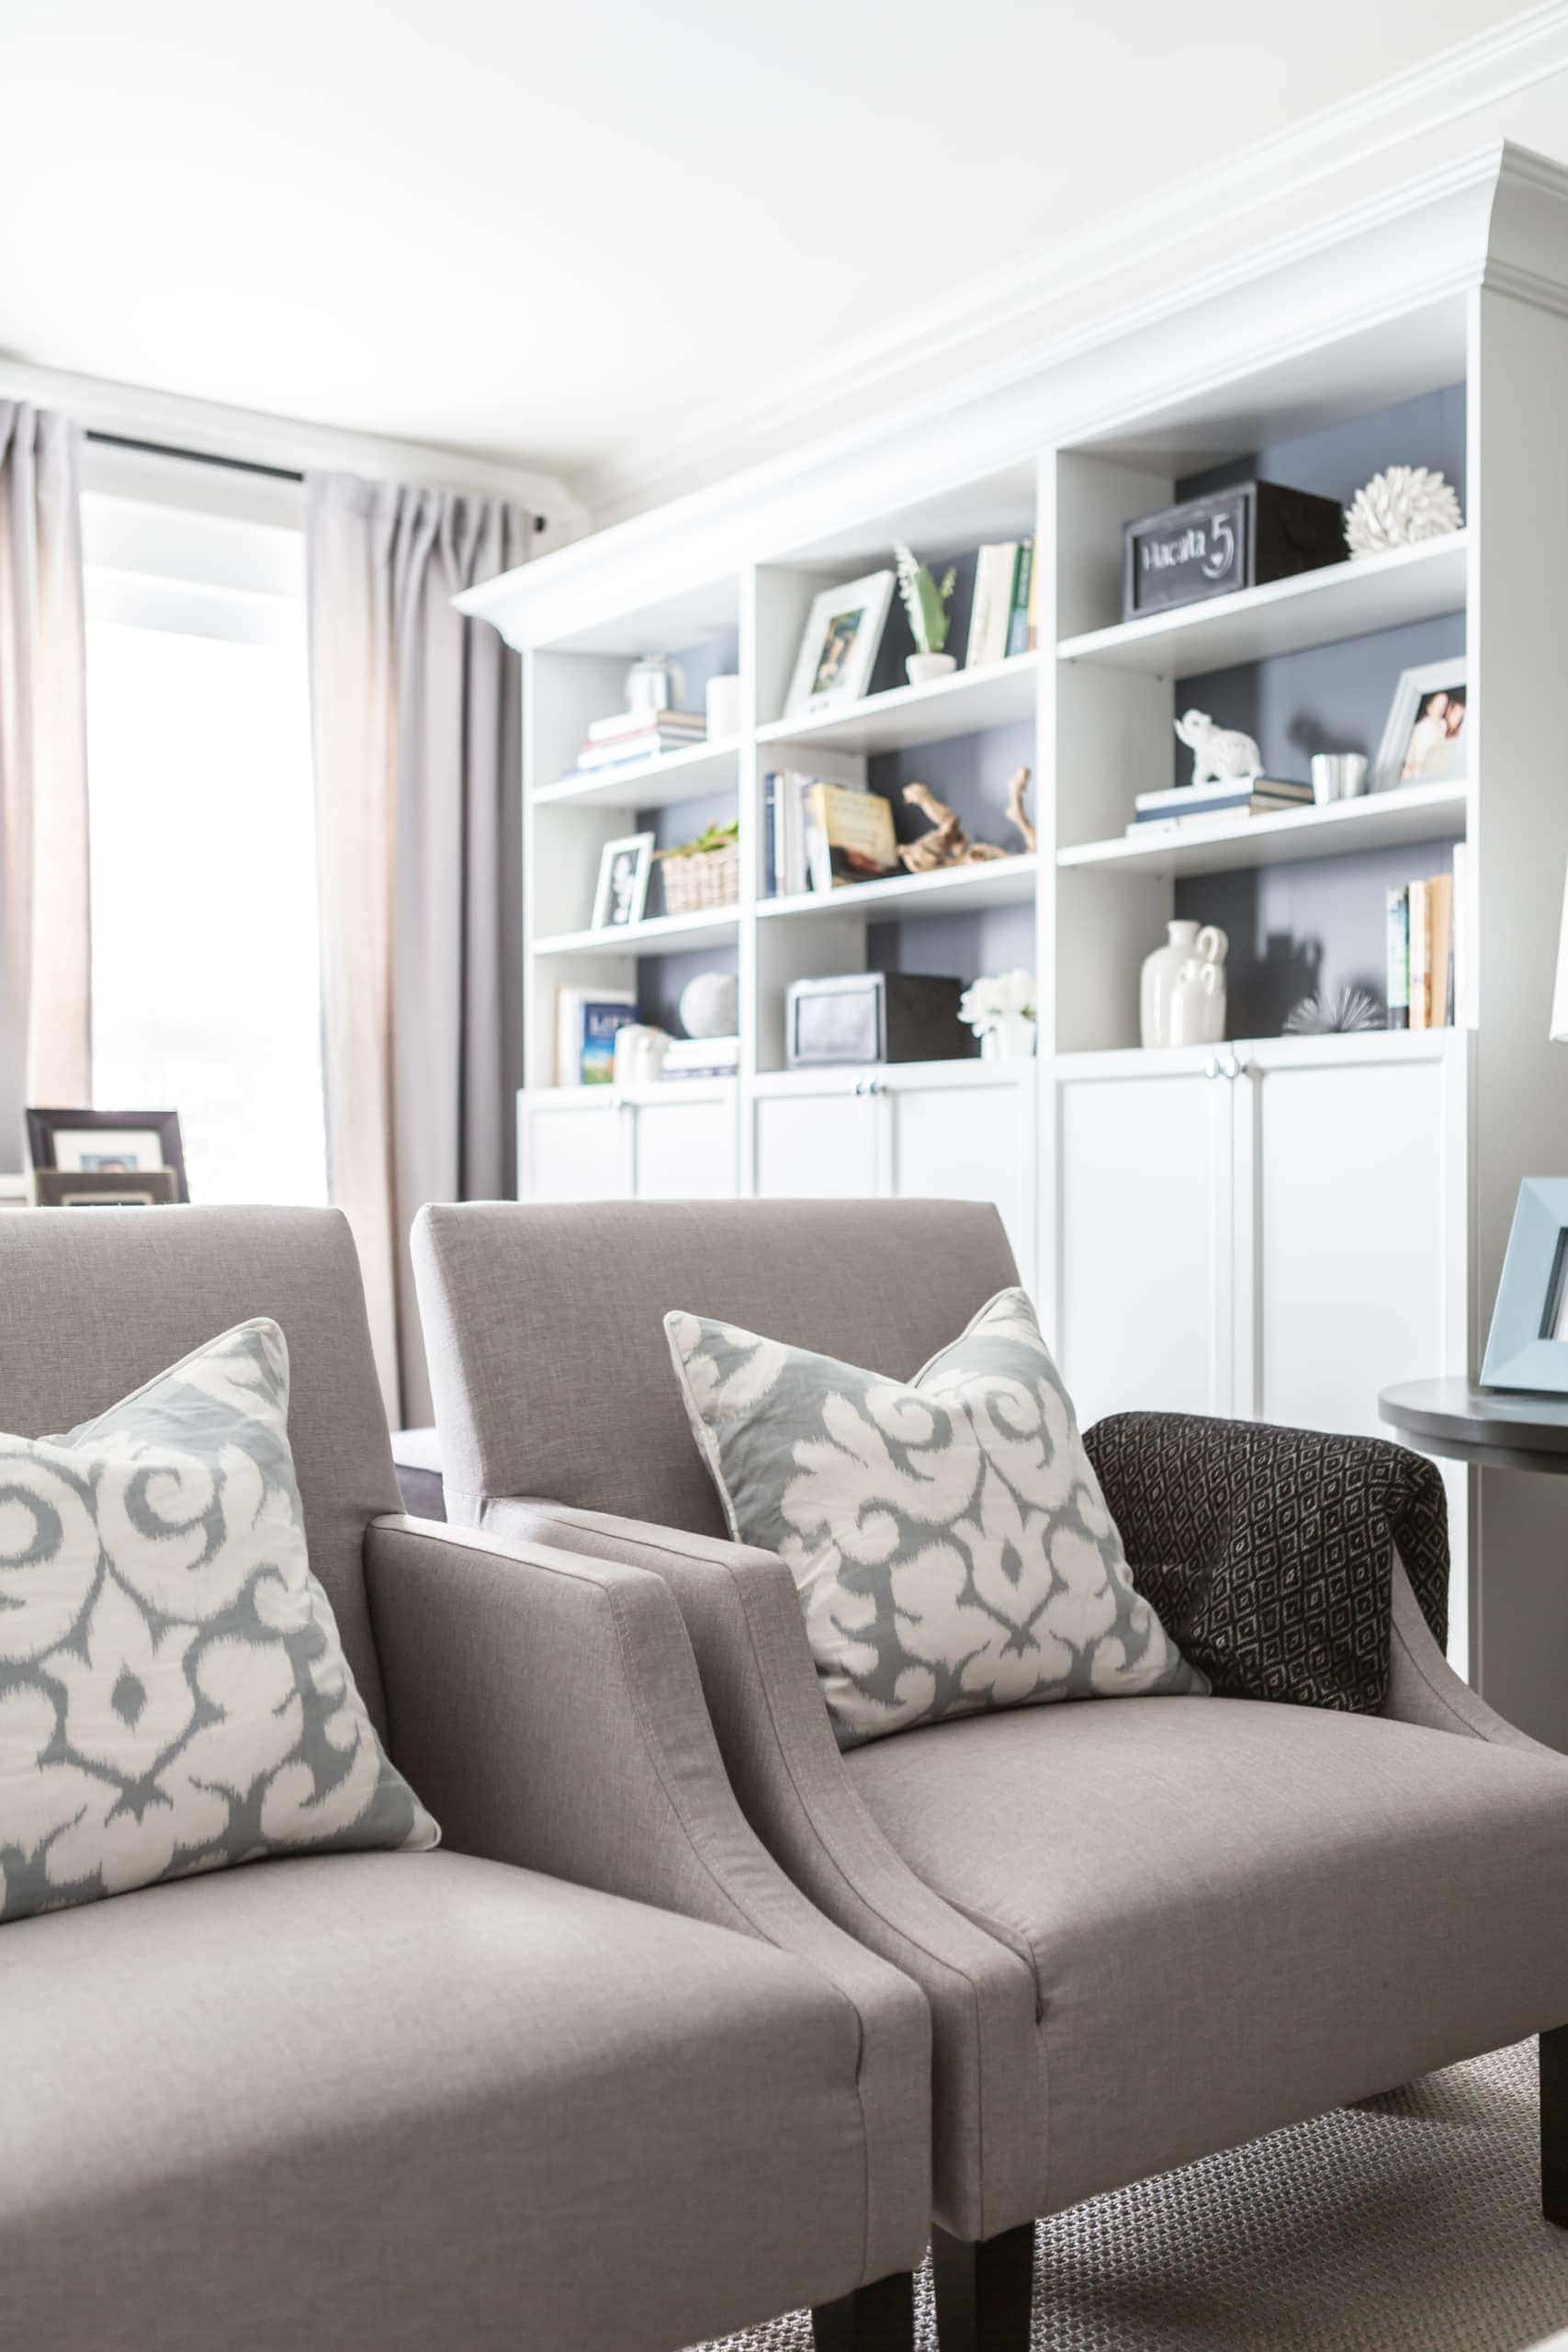 Two gray chairs inside a living room